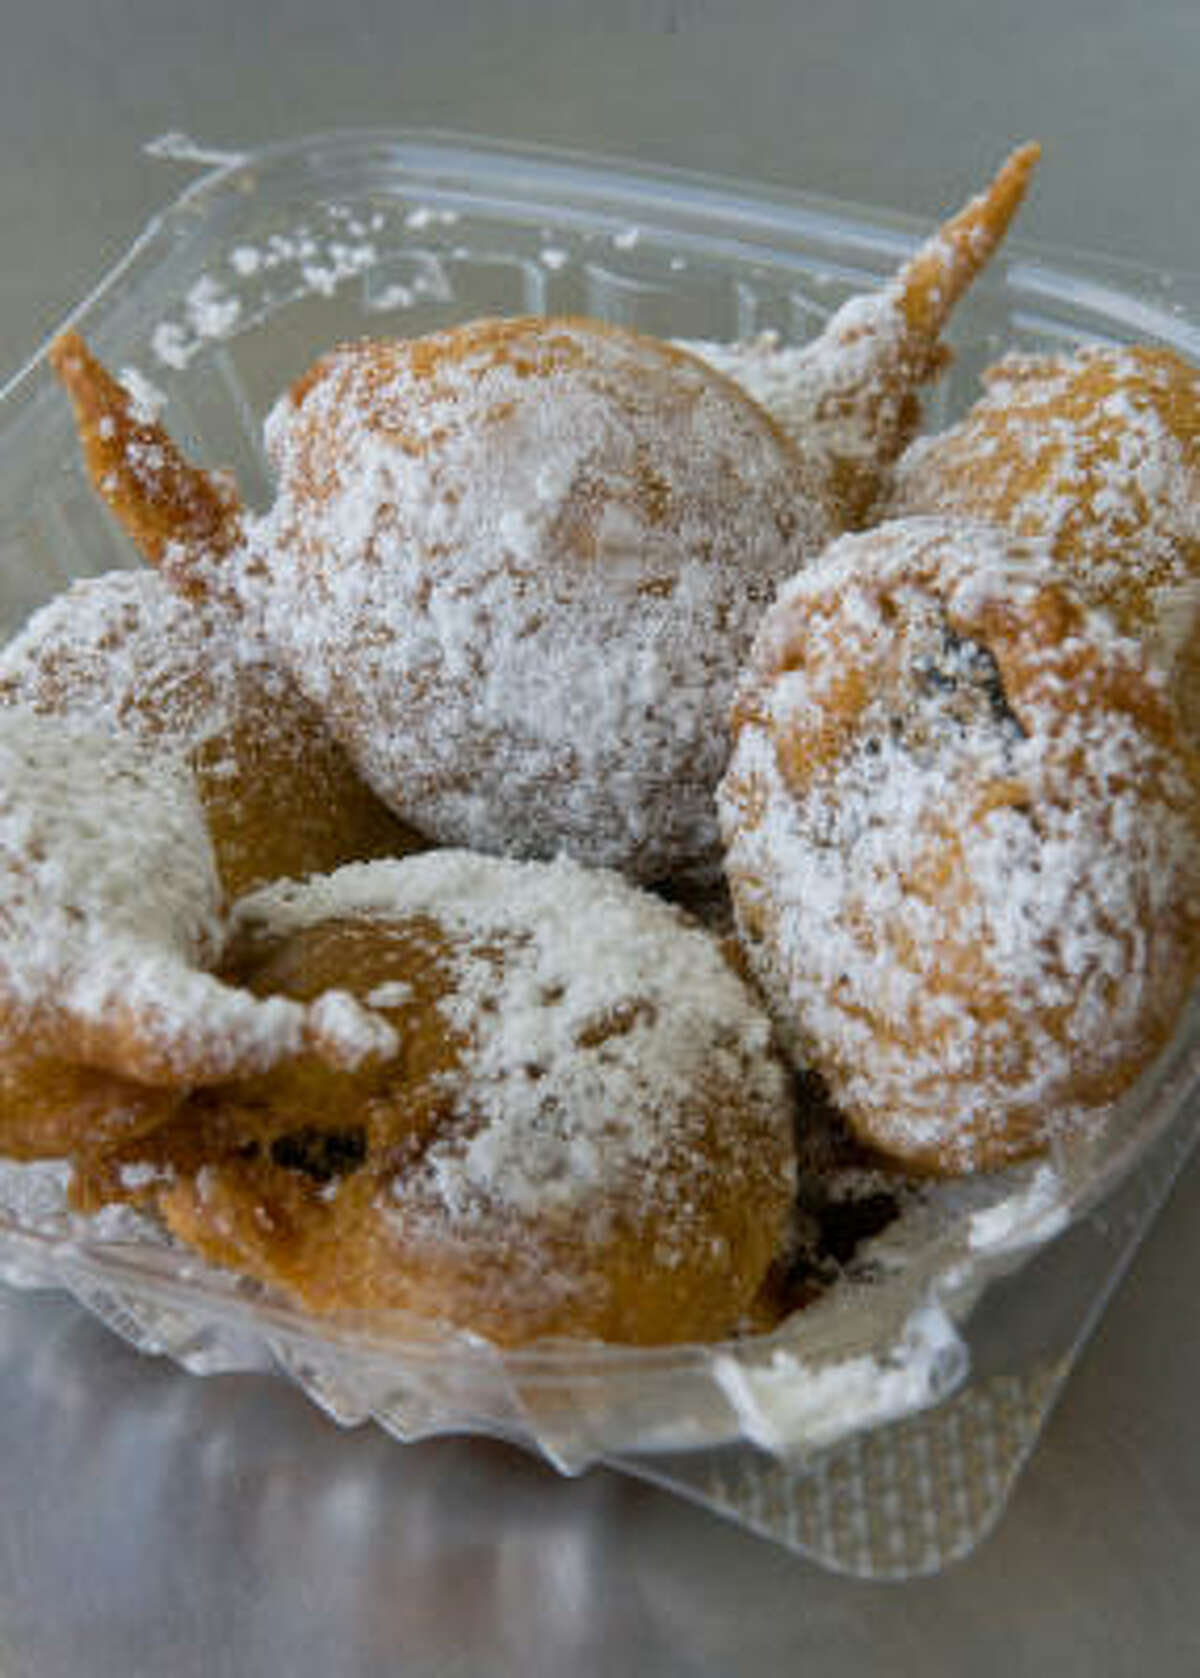 Fried Oreos from Piches Beignets, at the Houston Livestock Show and Rodeo